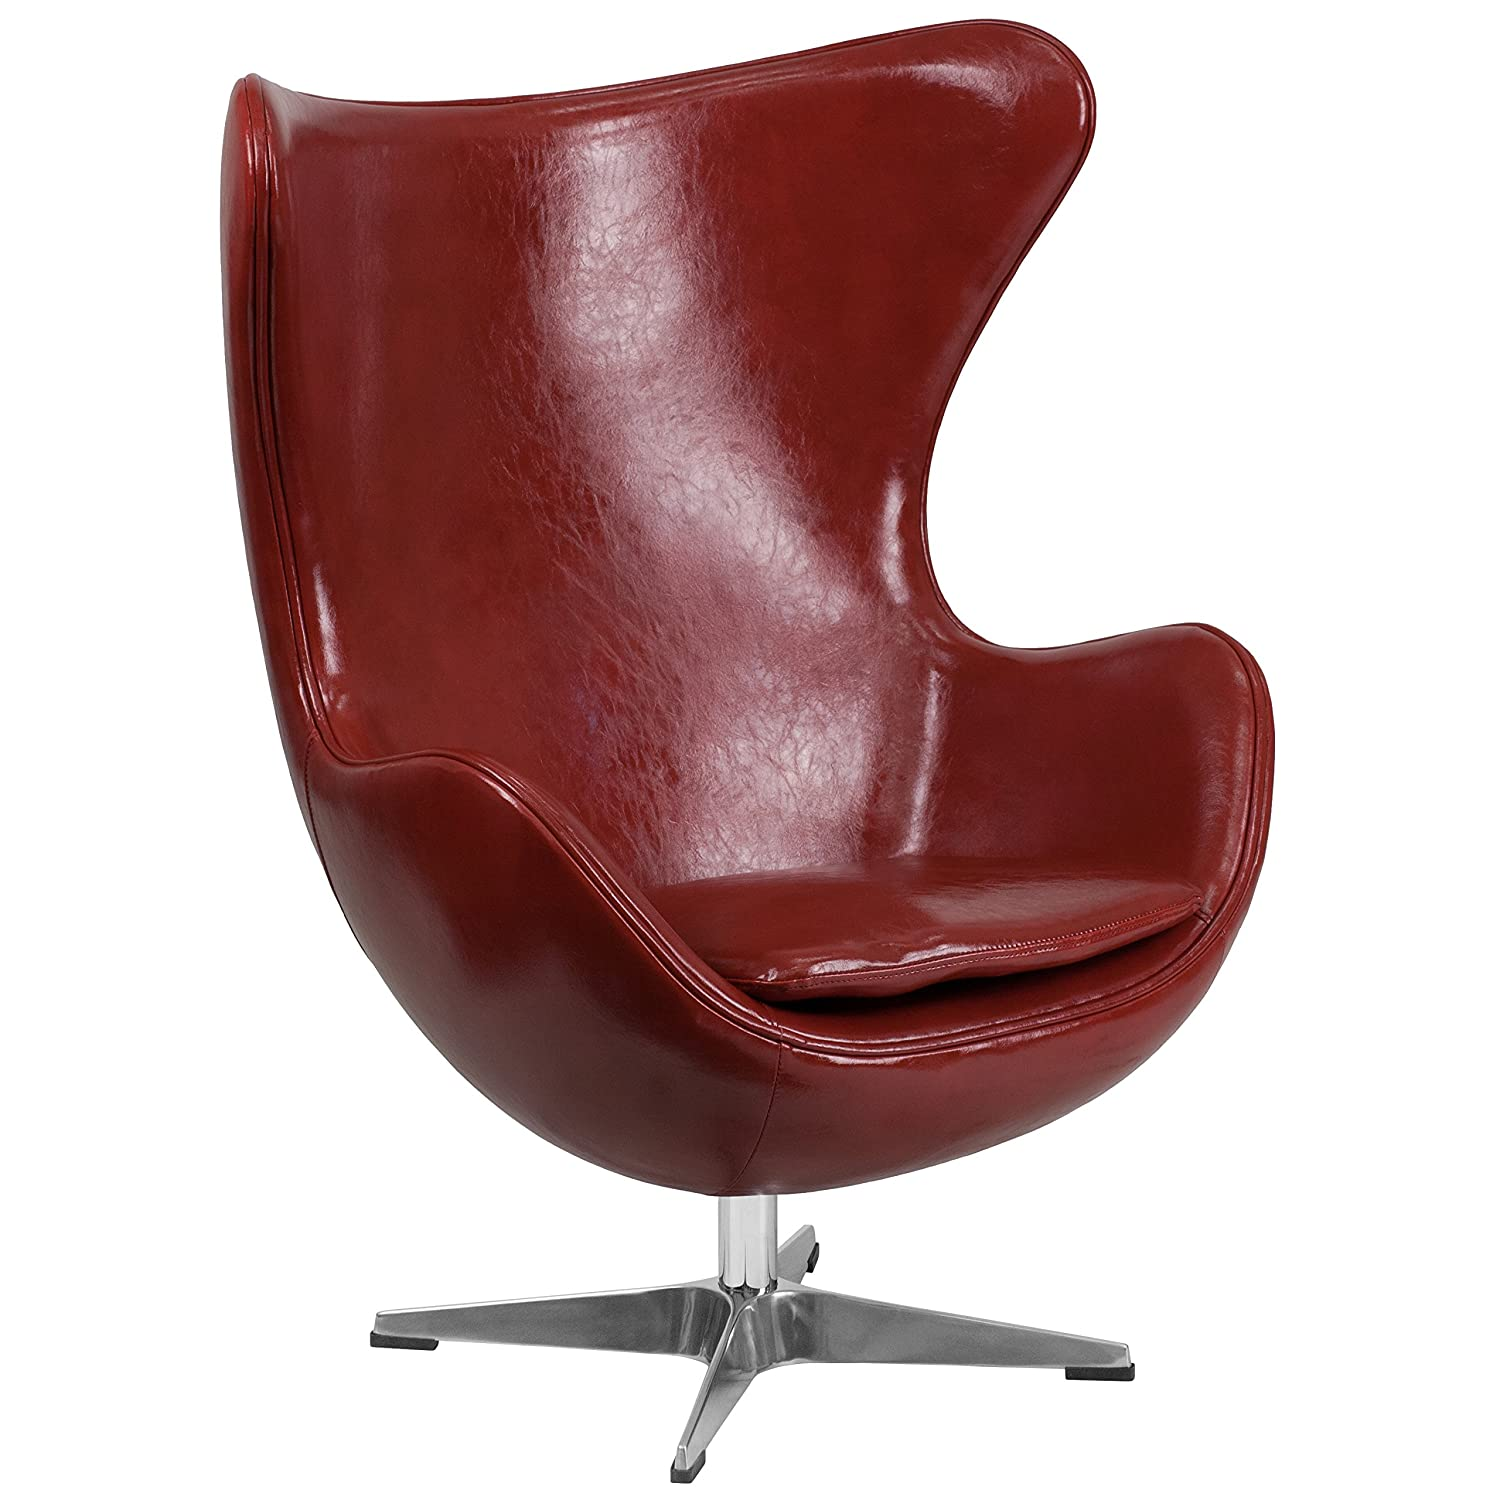 Amazon.com: Flash Furniture Cordovan Leather Egg Chair With Tilt Lock  Mechanism: Kitchen U0026 Dining